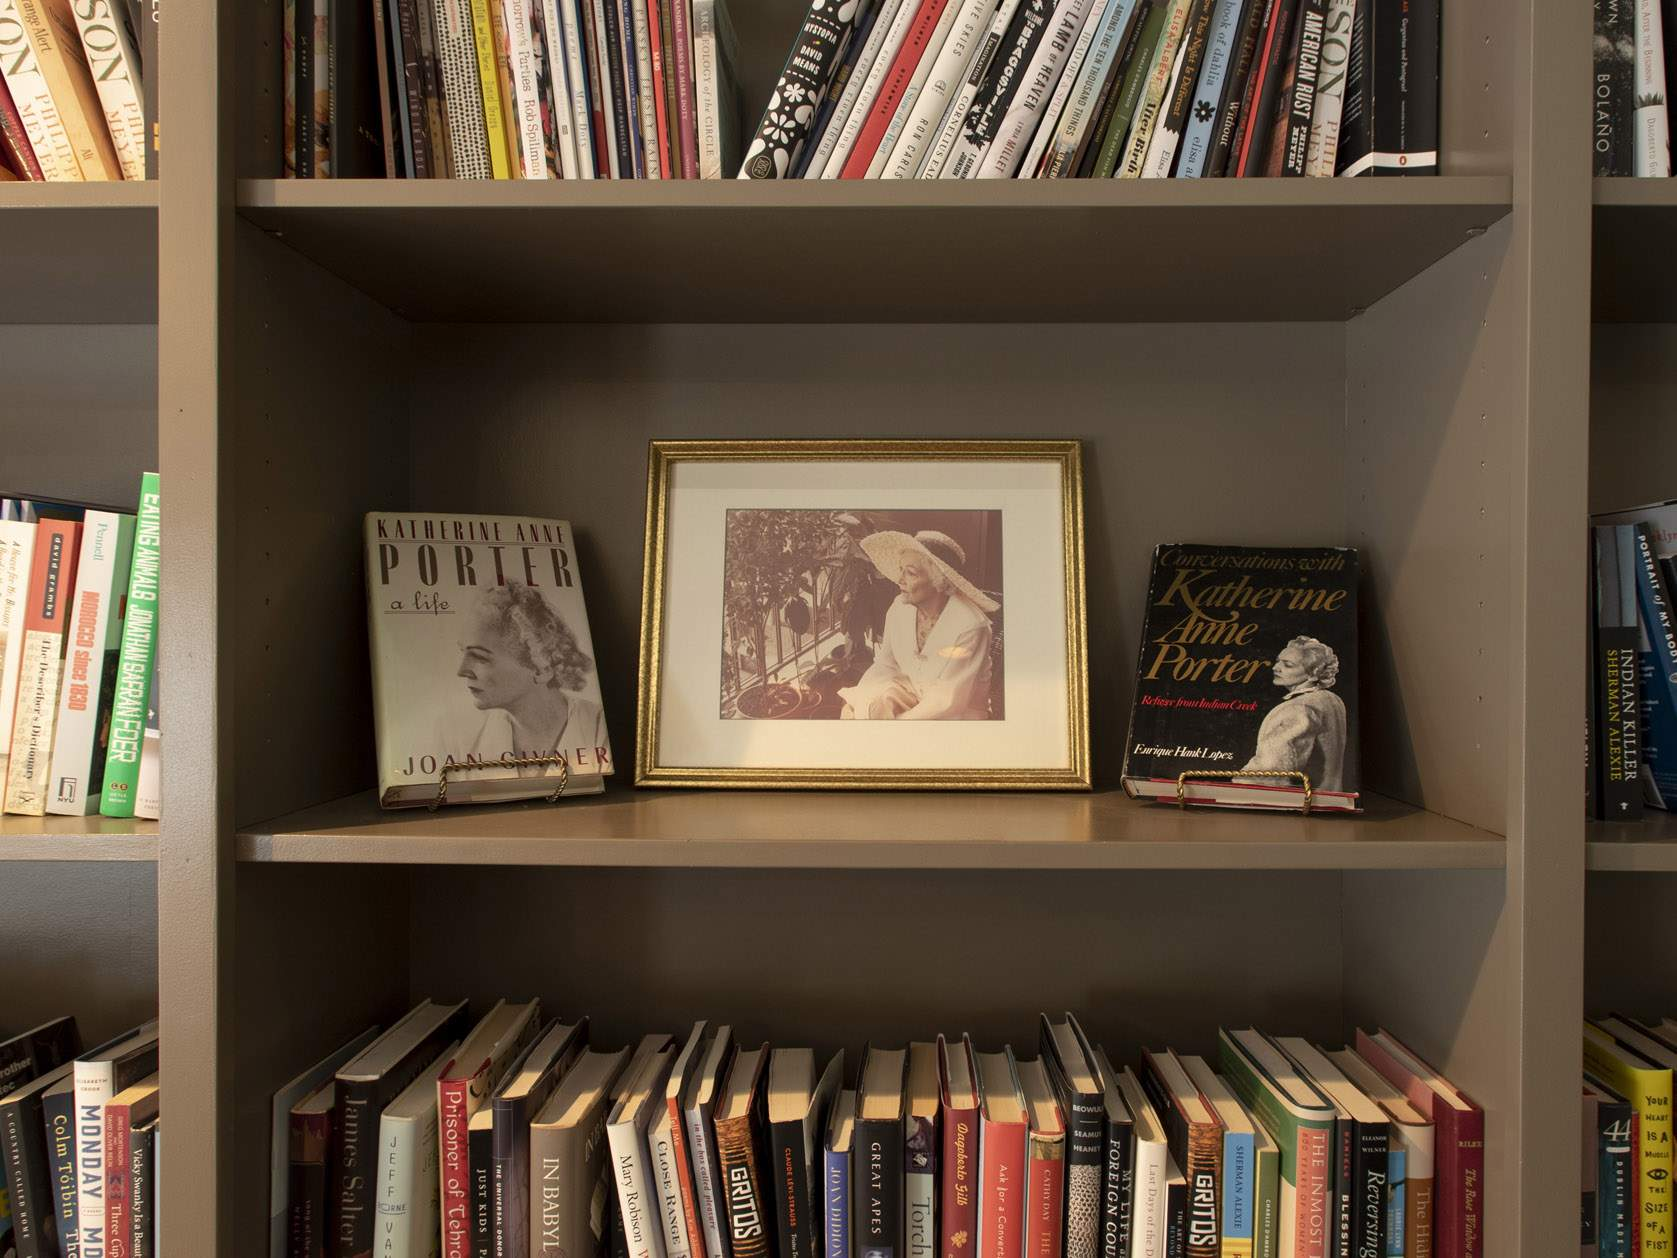 frame of katherine anne porter on bookshelf